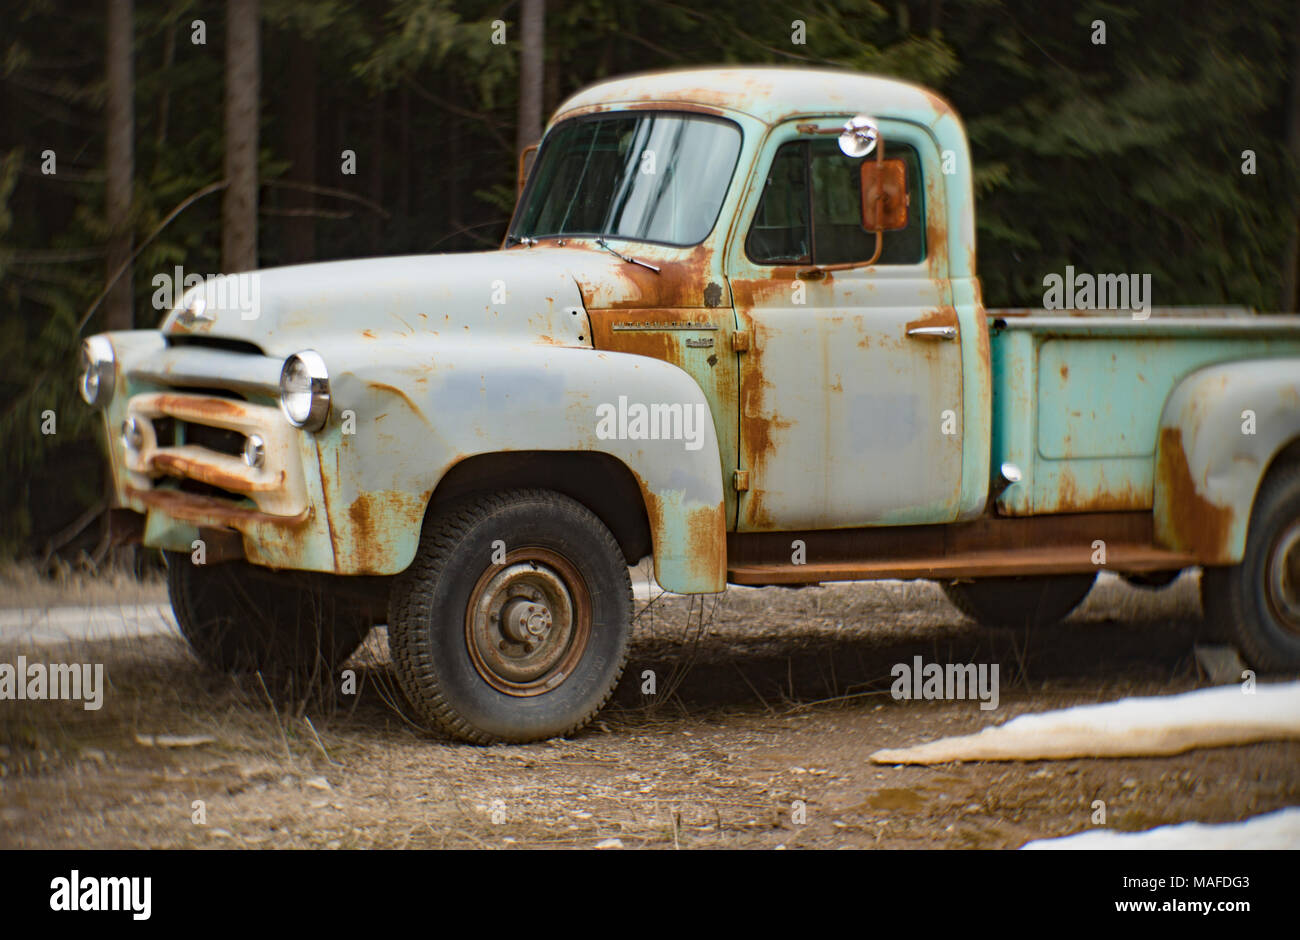 Blue Pickup Truck Stock Photos & Blue Pickup Truck Stock Images - Alamy